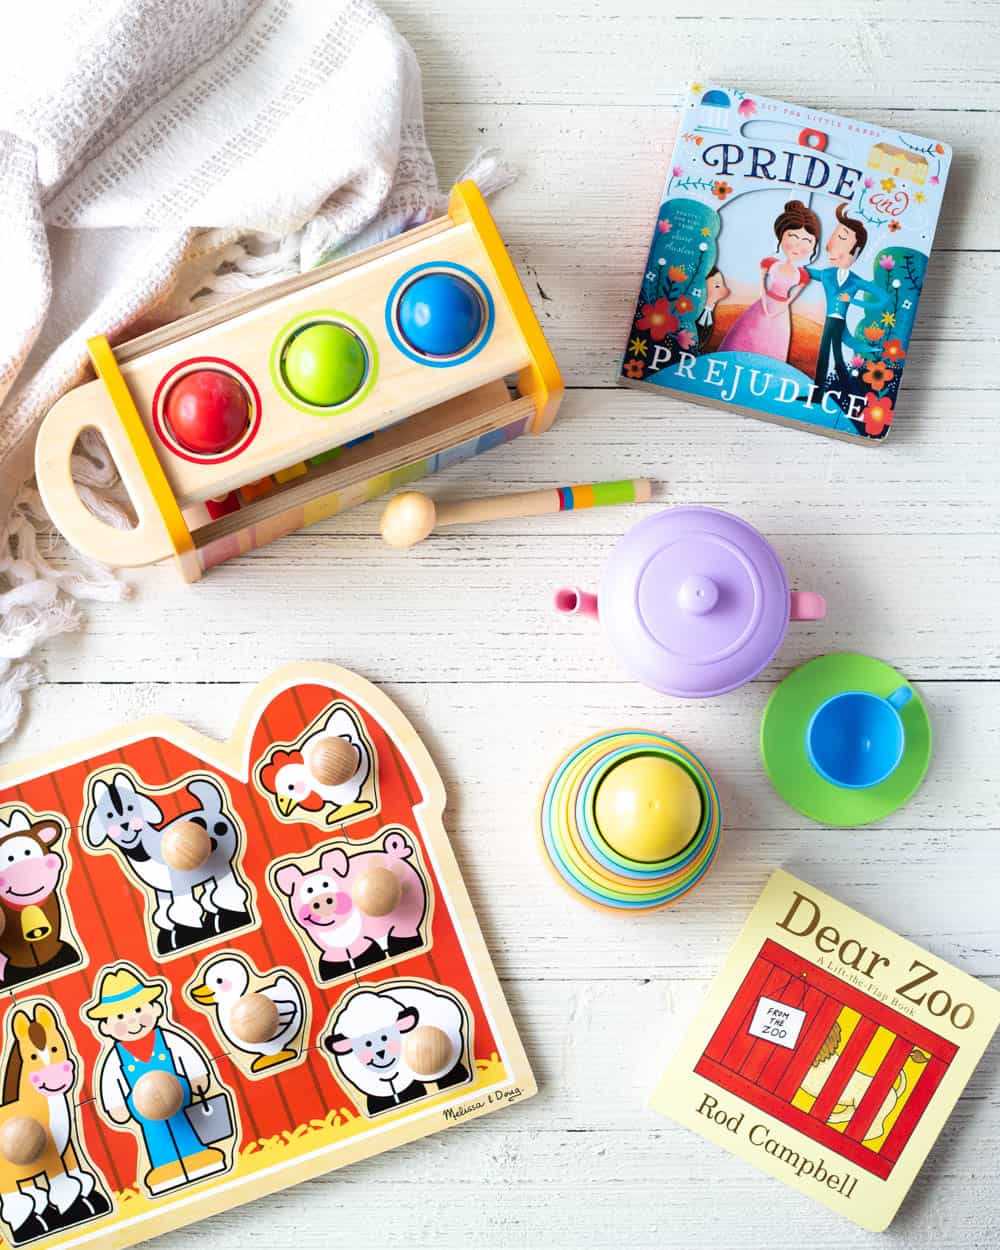 Educational toys under $25 for one-year-olds including, toddler puzzles, stackers, books, and a xylophone on a wooden surface.